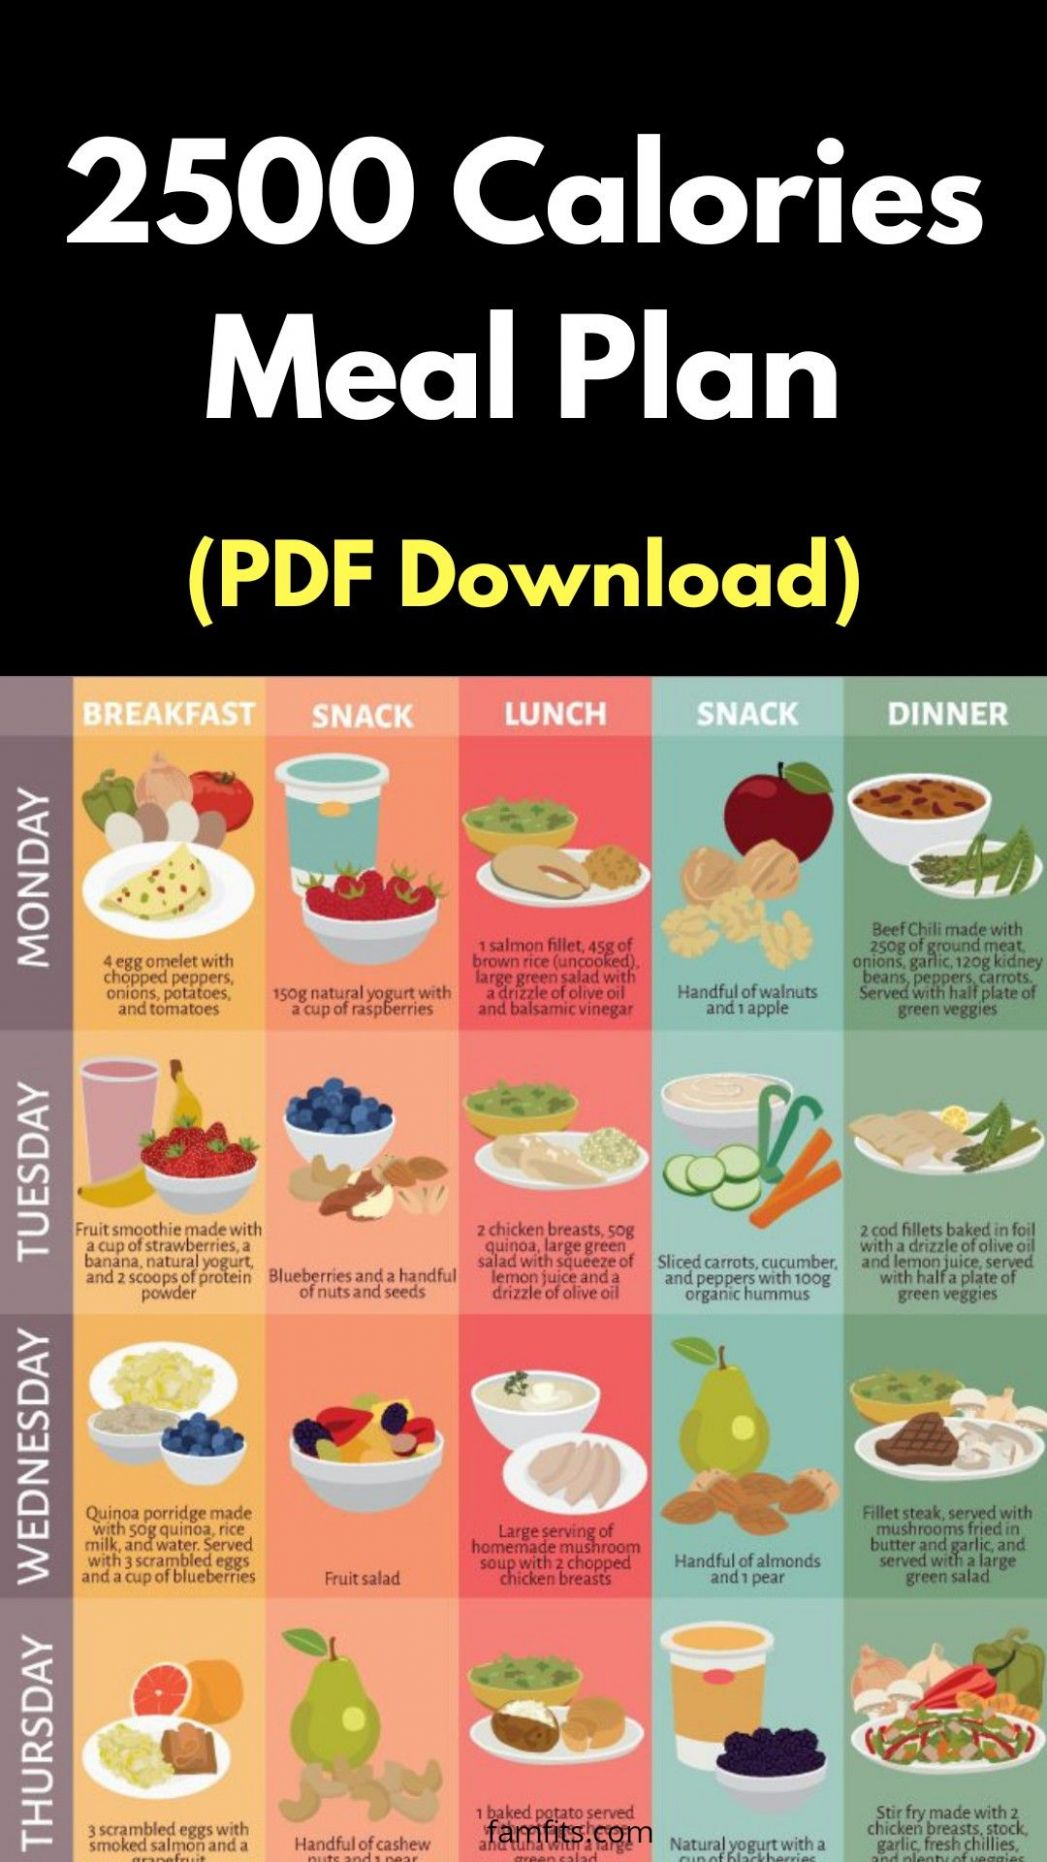 11 calorie meal plan for weight loss. Include PDF download file ..